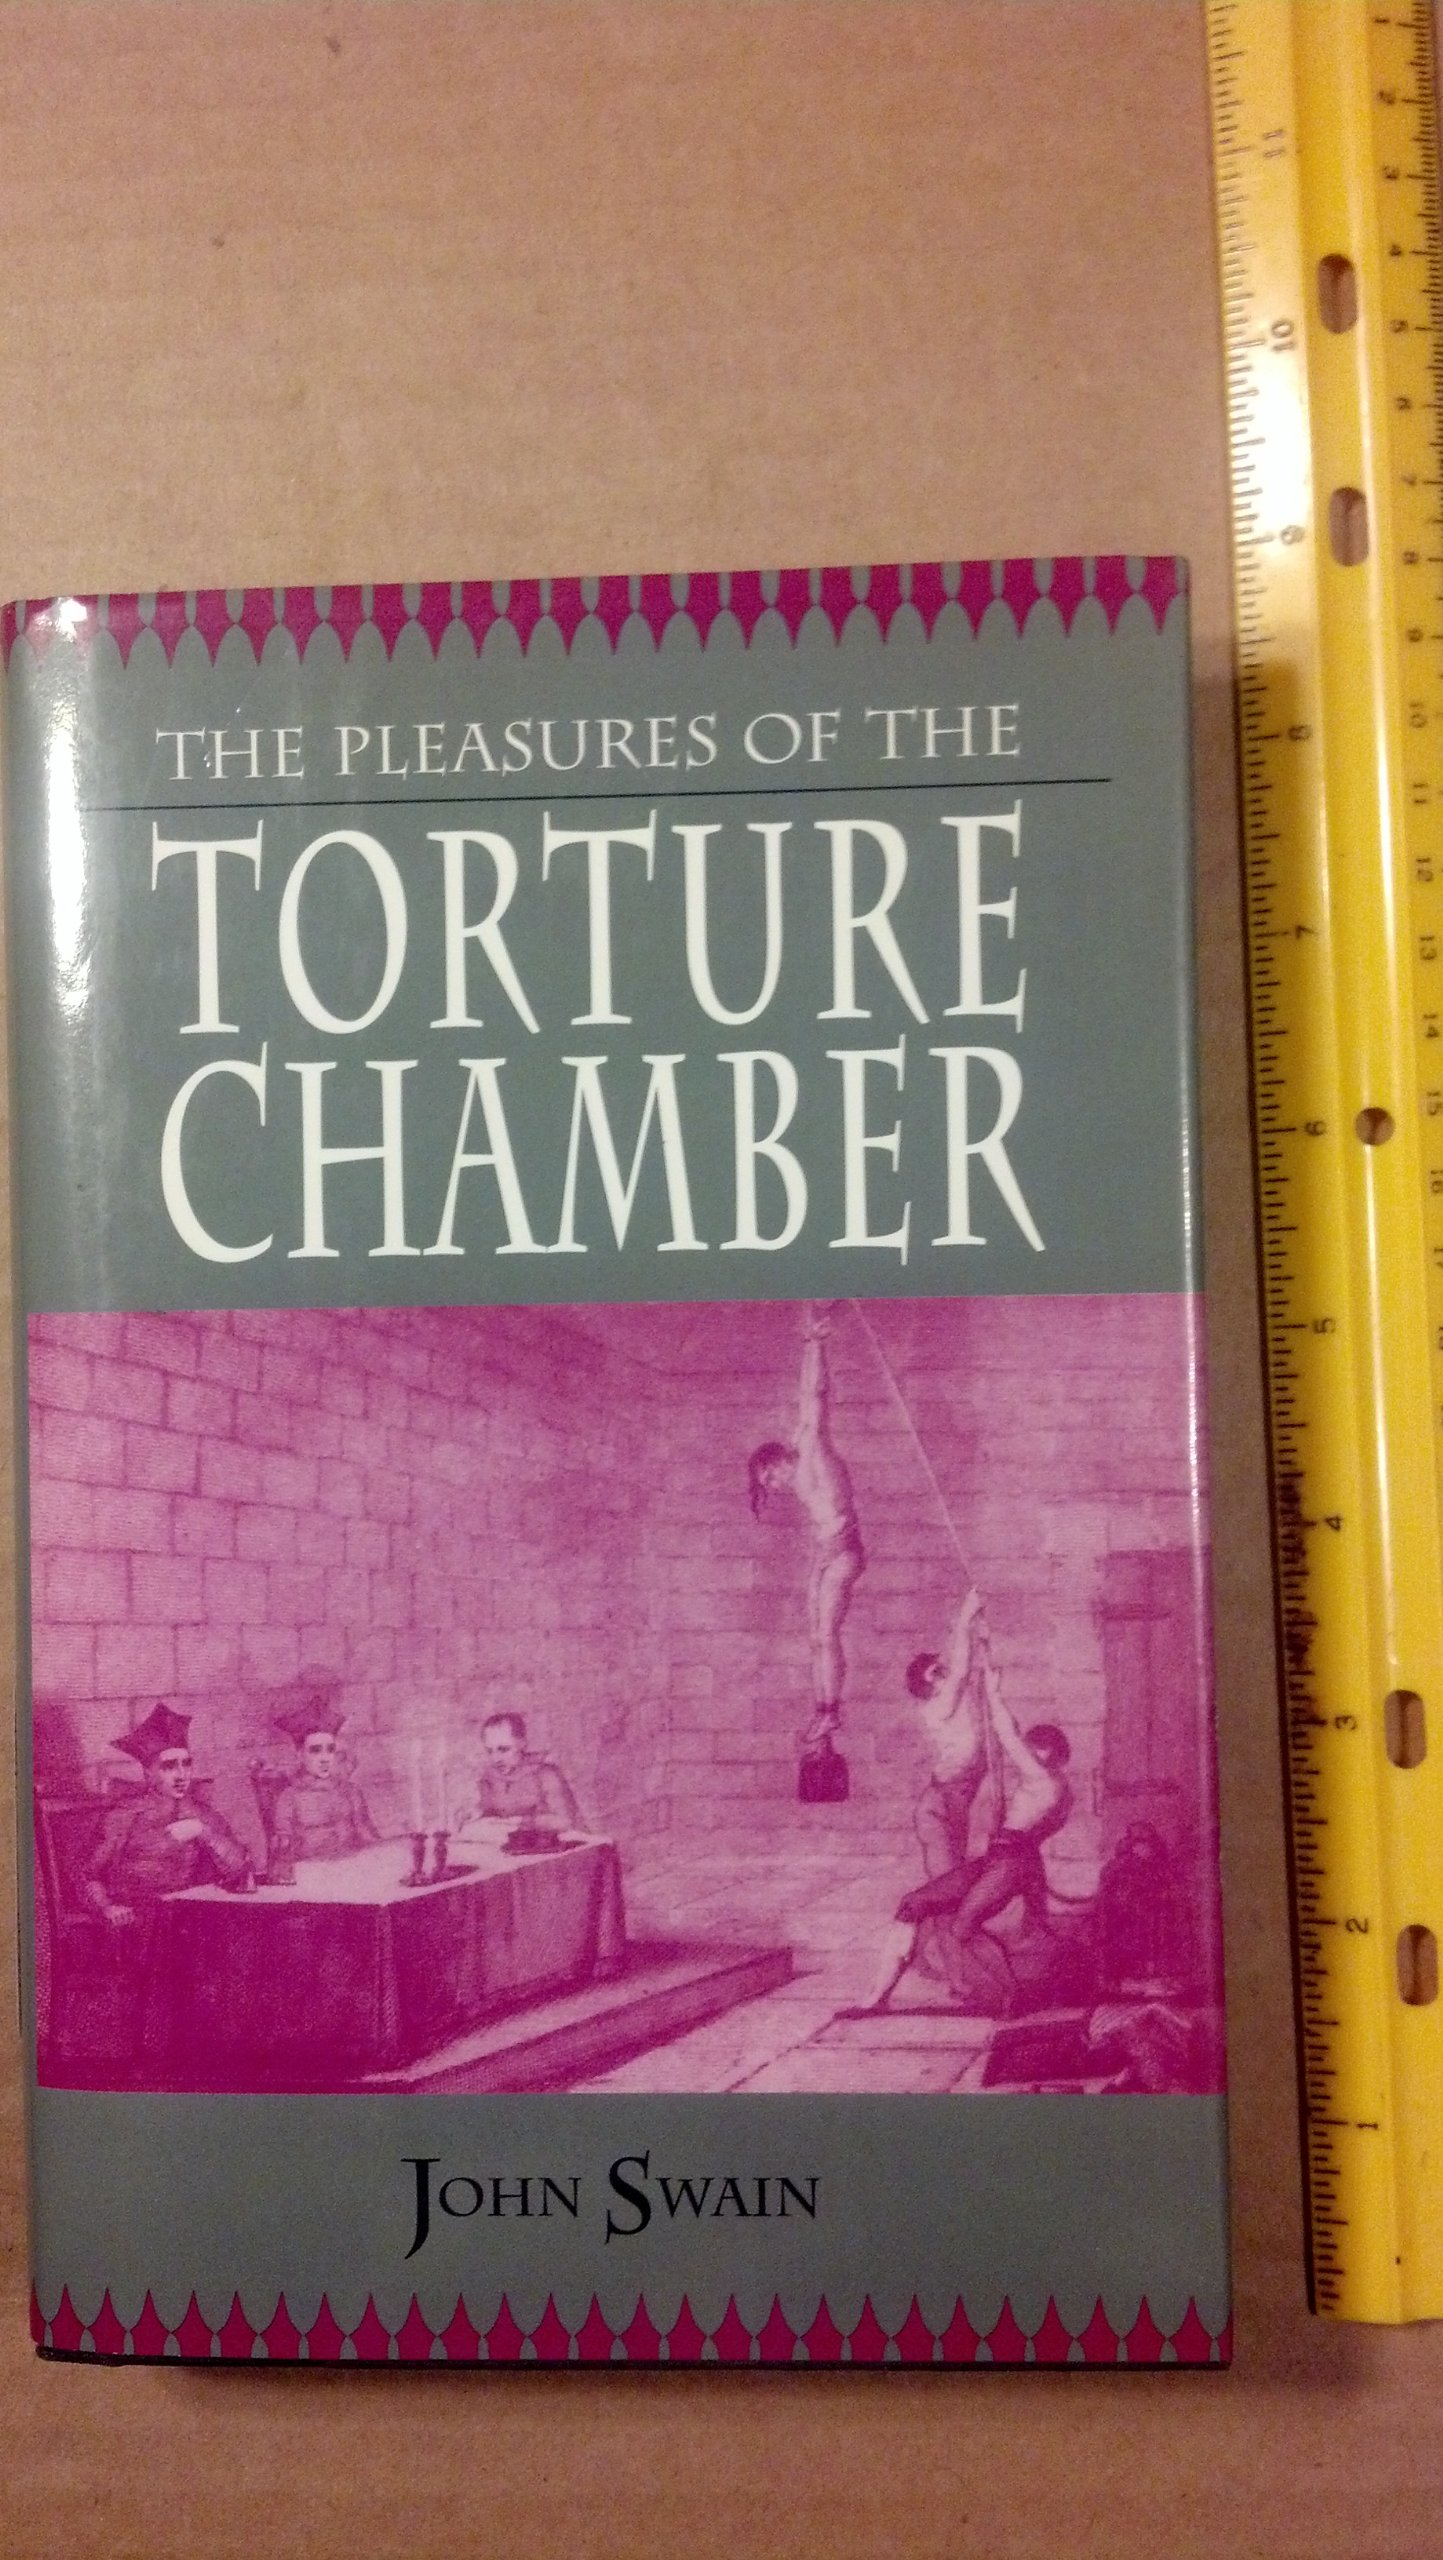 Pleasures of the Torture Chamber, John Swain